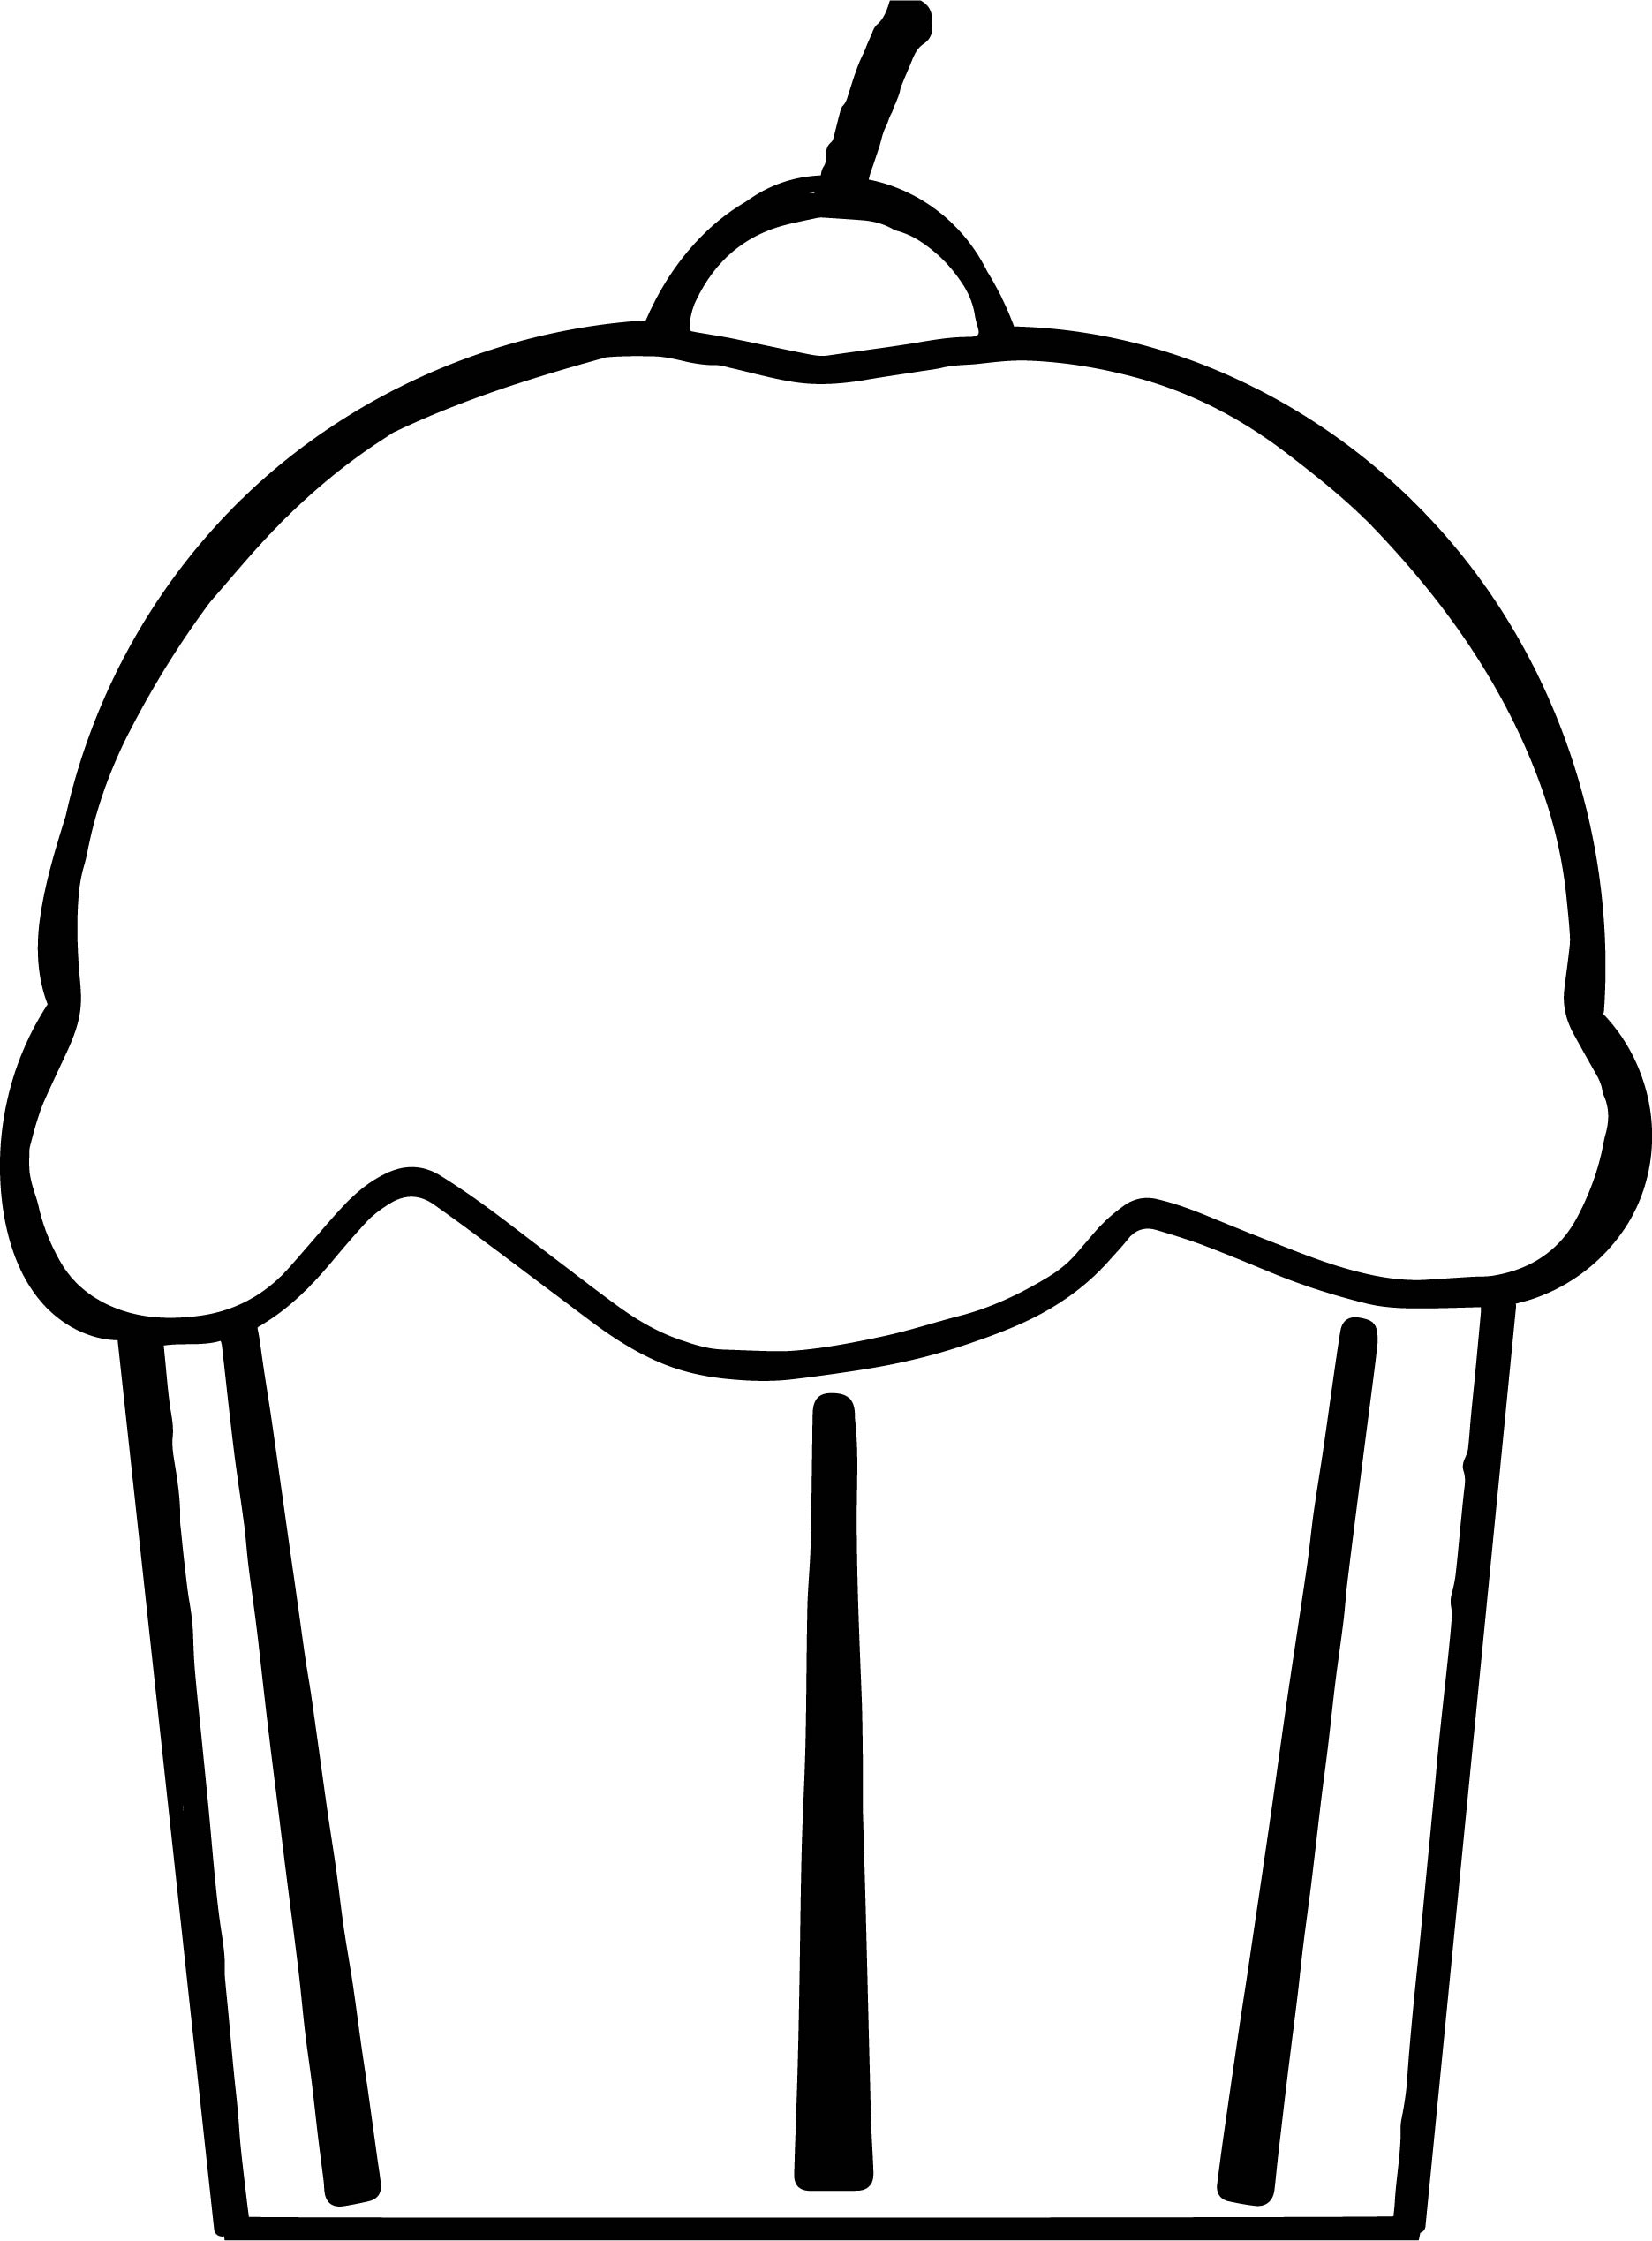 Cherry Cupcake Art Image Coloring Page